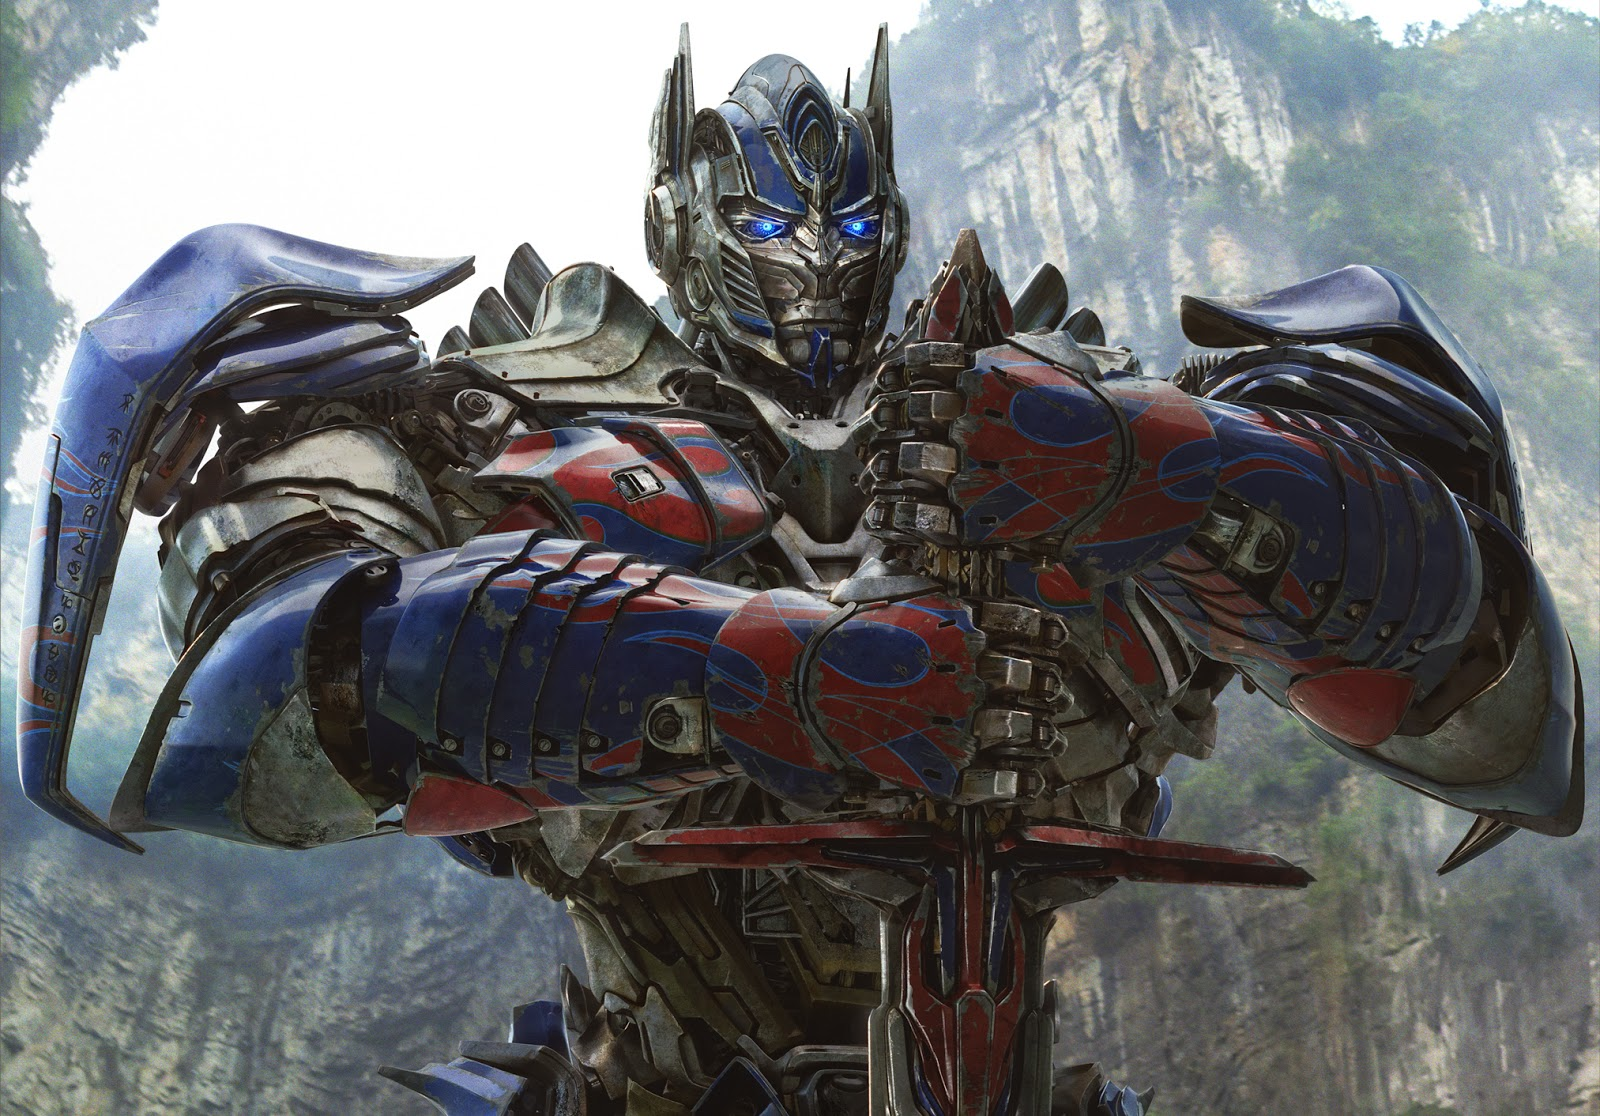 Transformers: Age of Extinction - First Trailer & Posters